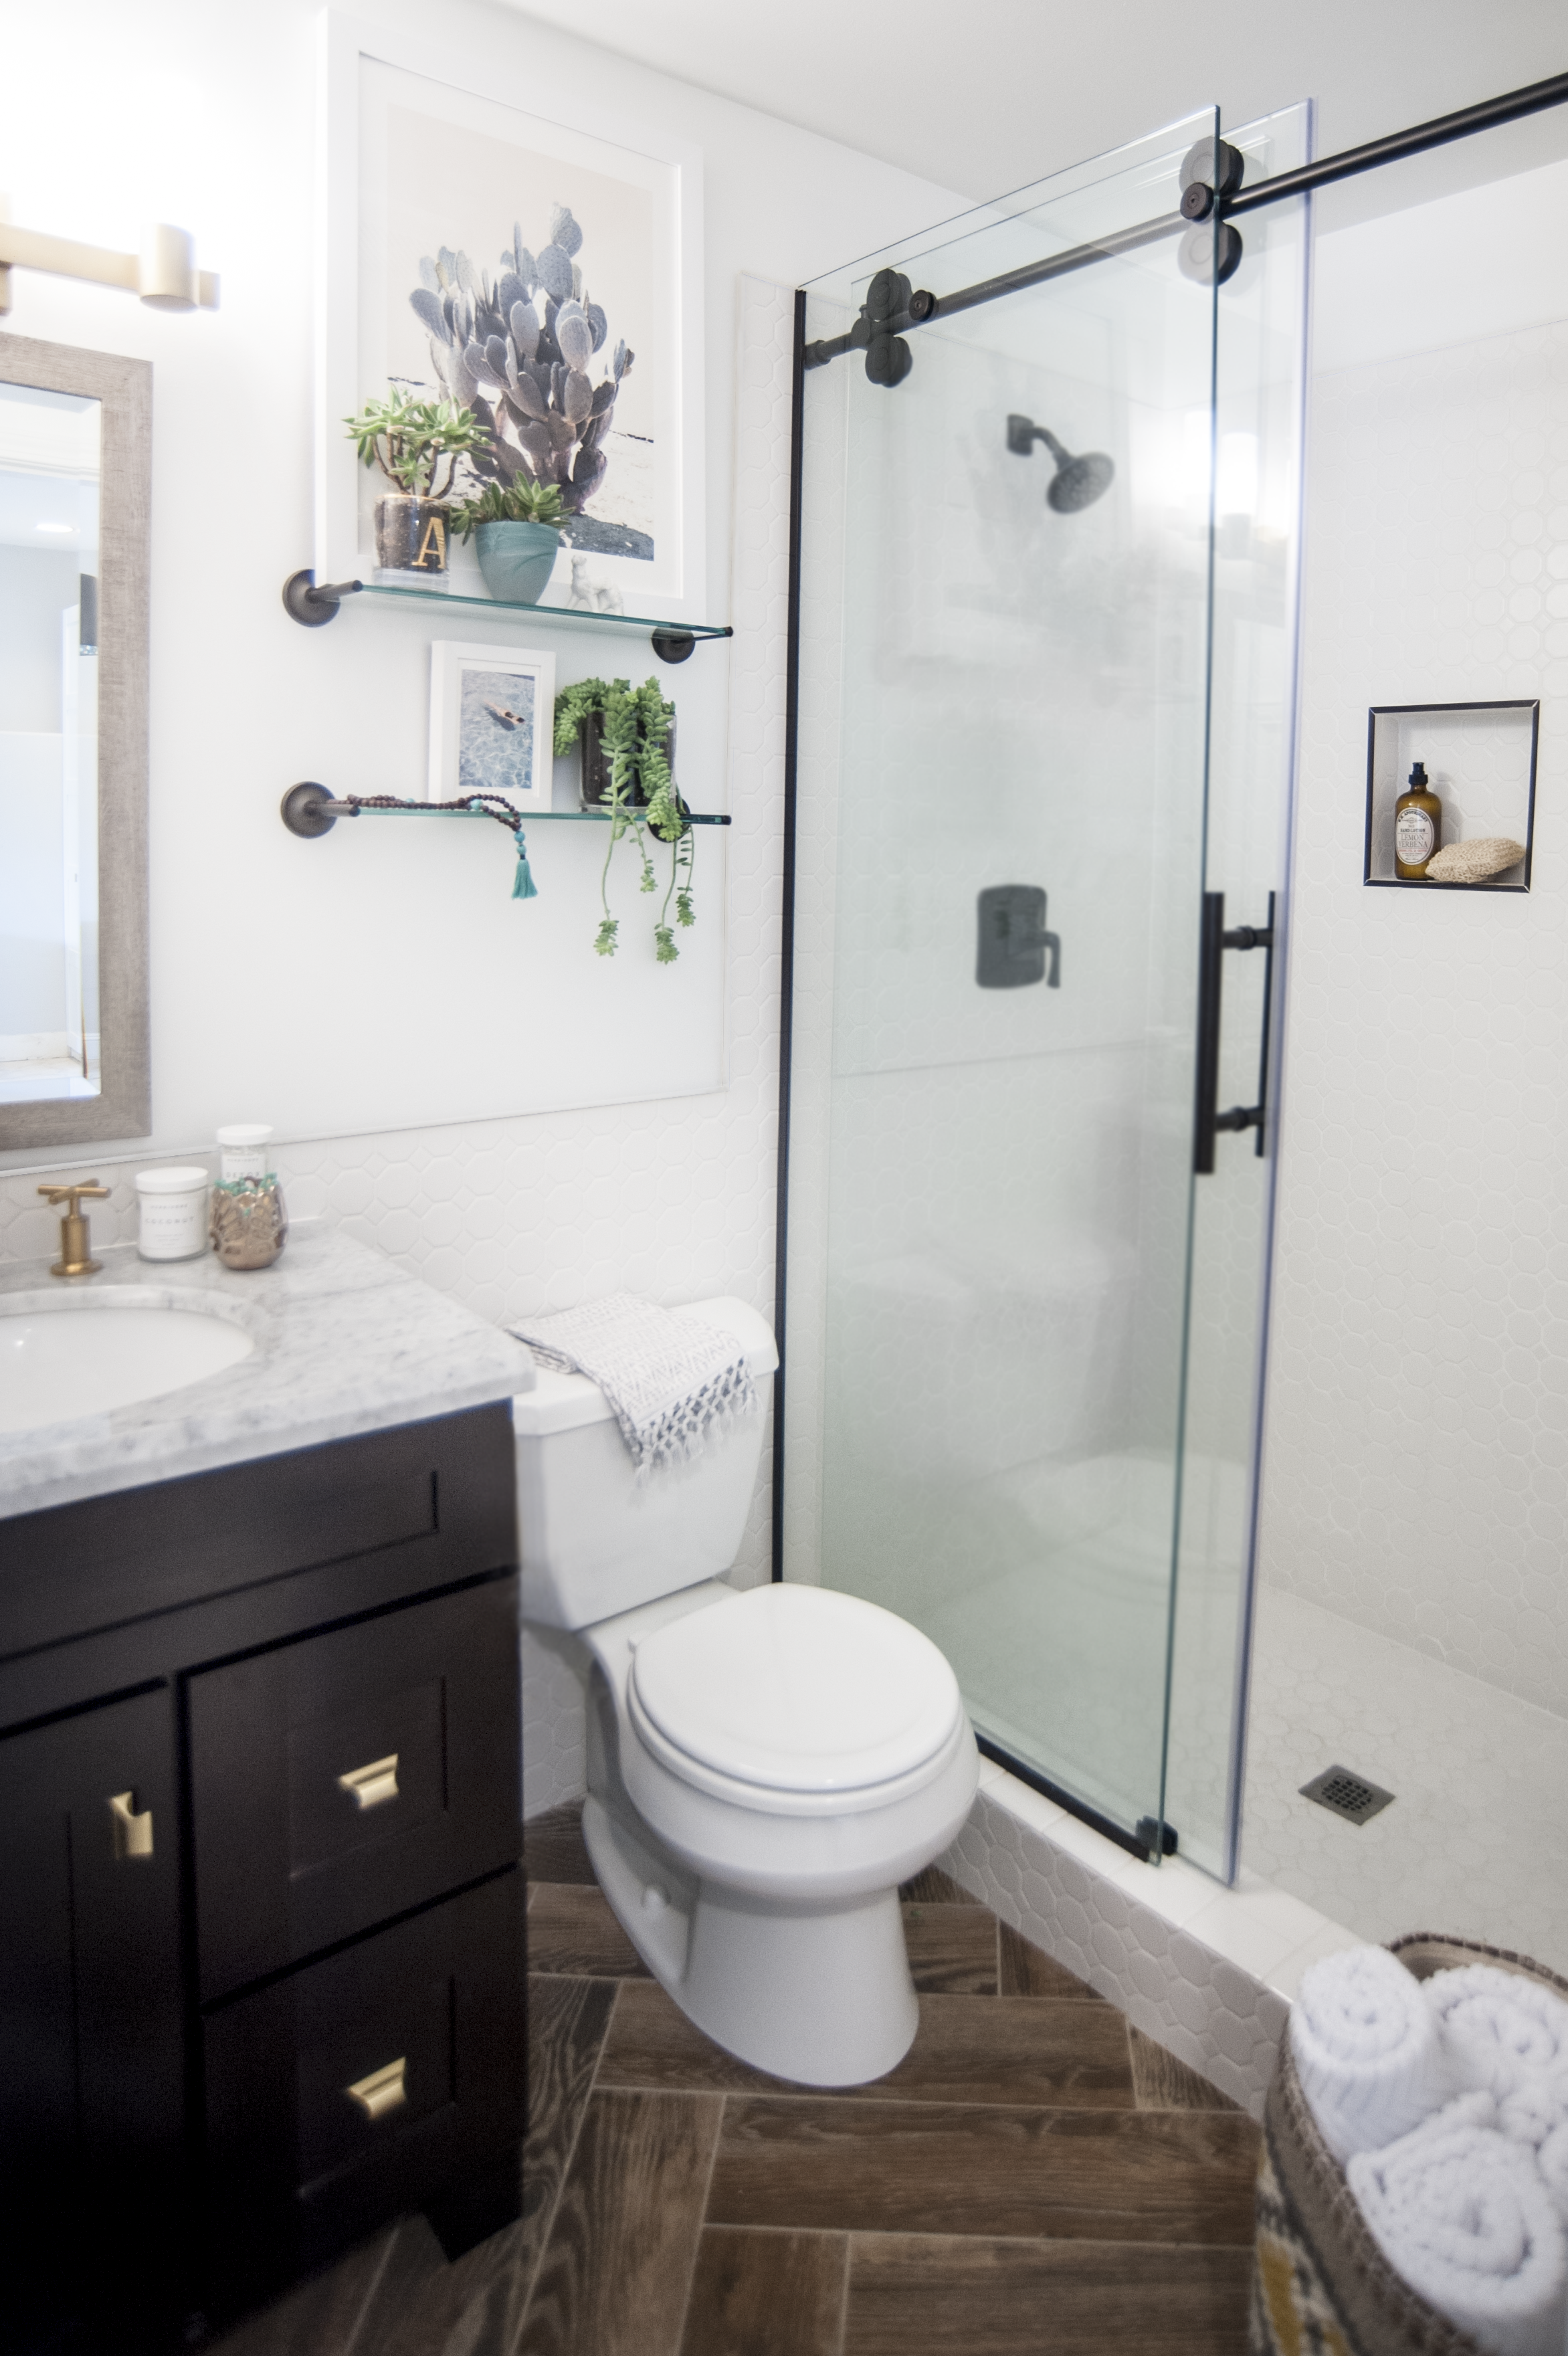 This Bathroom Renovation Tip Will Save You Time And Money Bath - How to save money on bathroom remodel